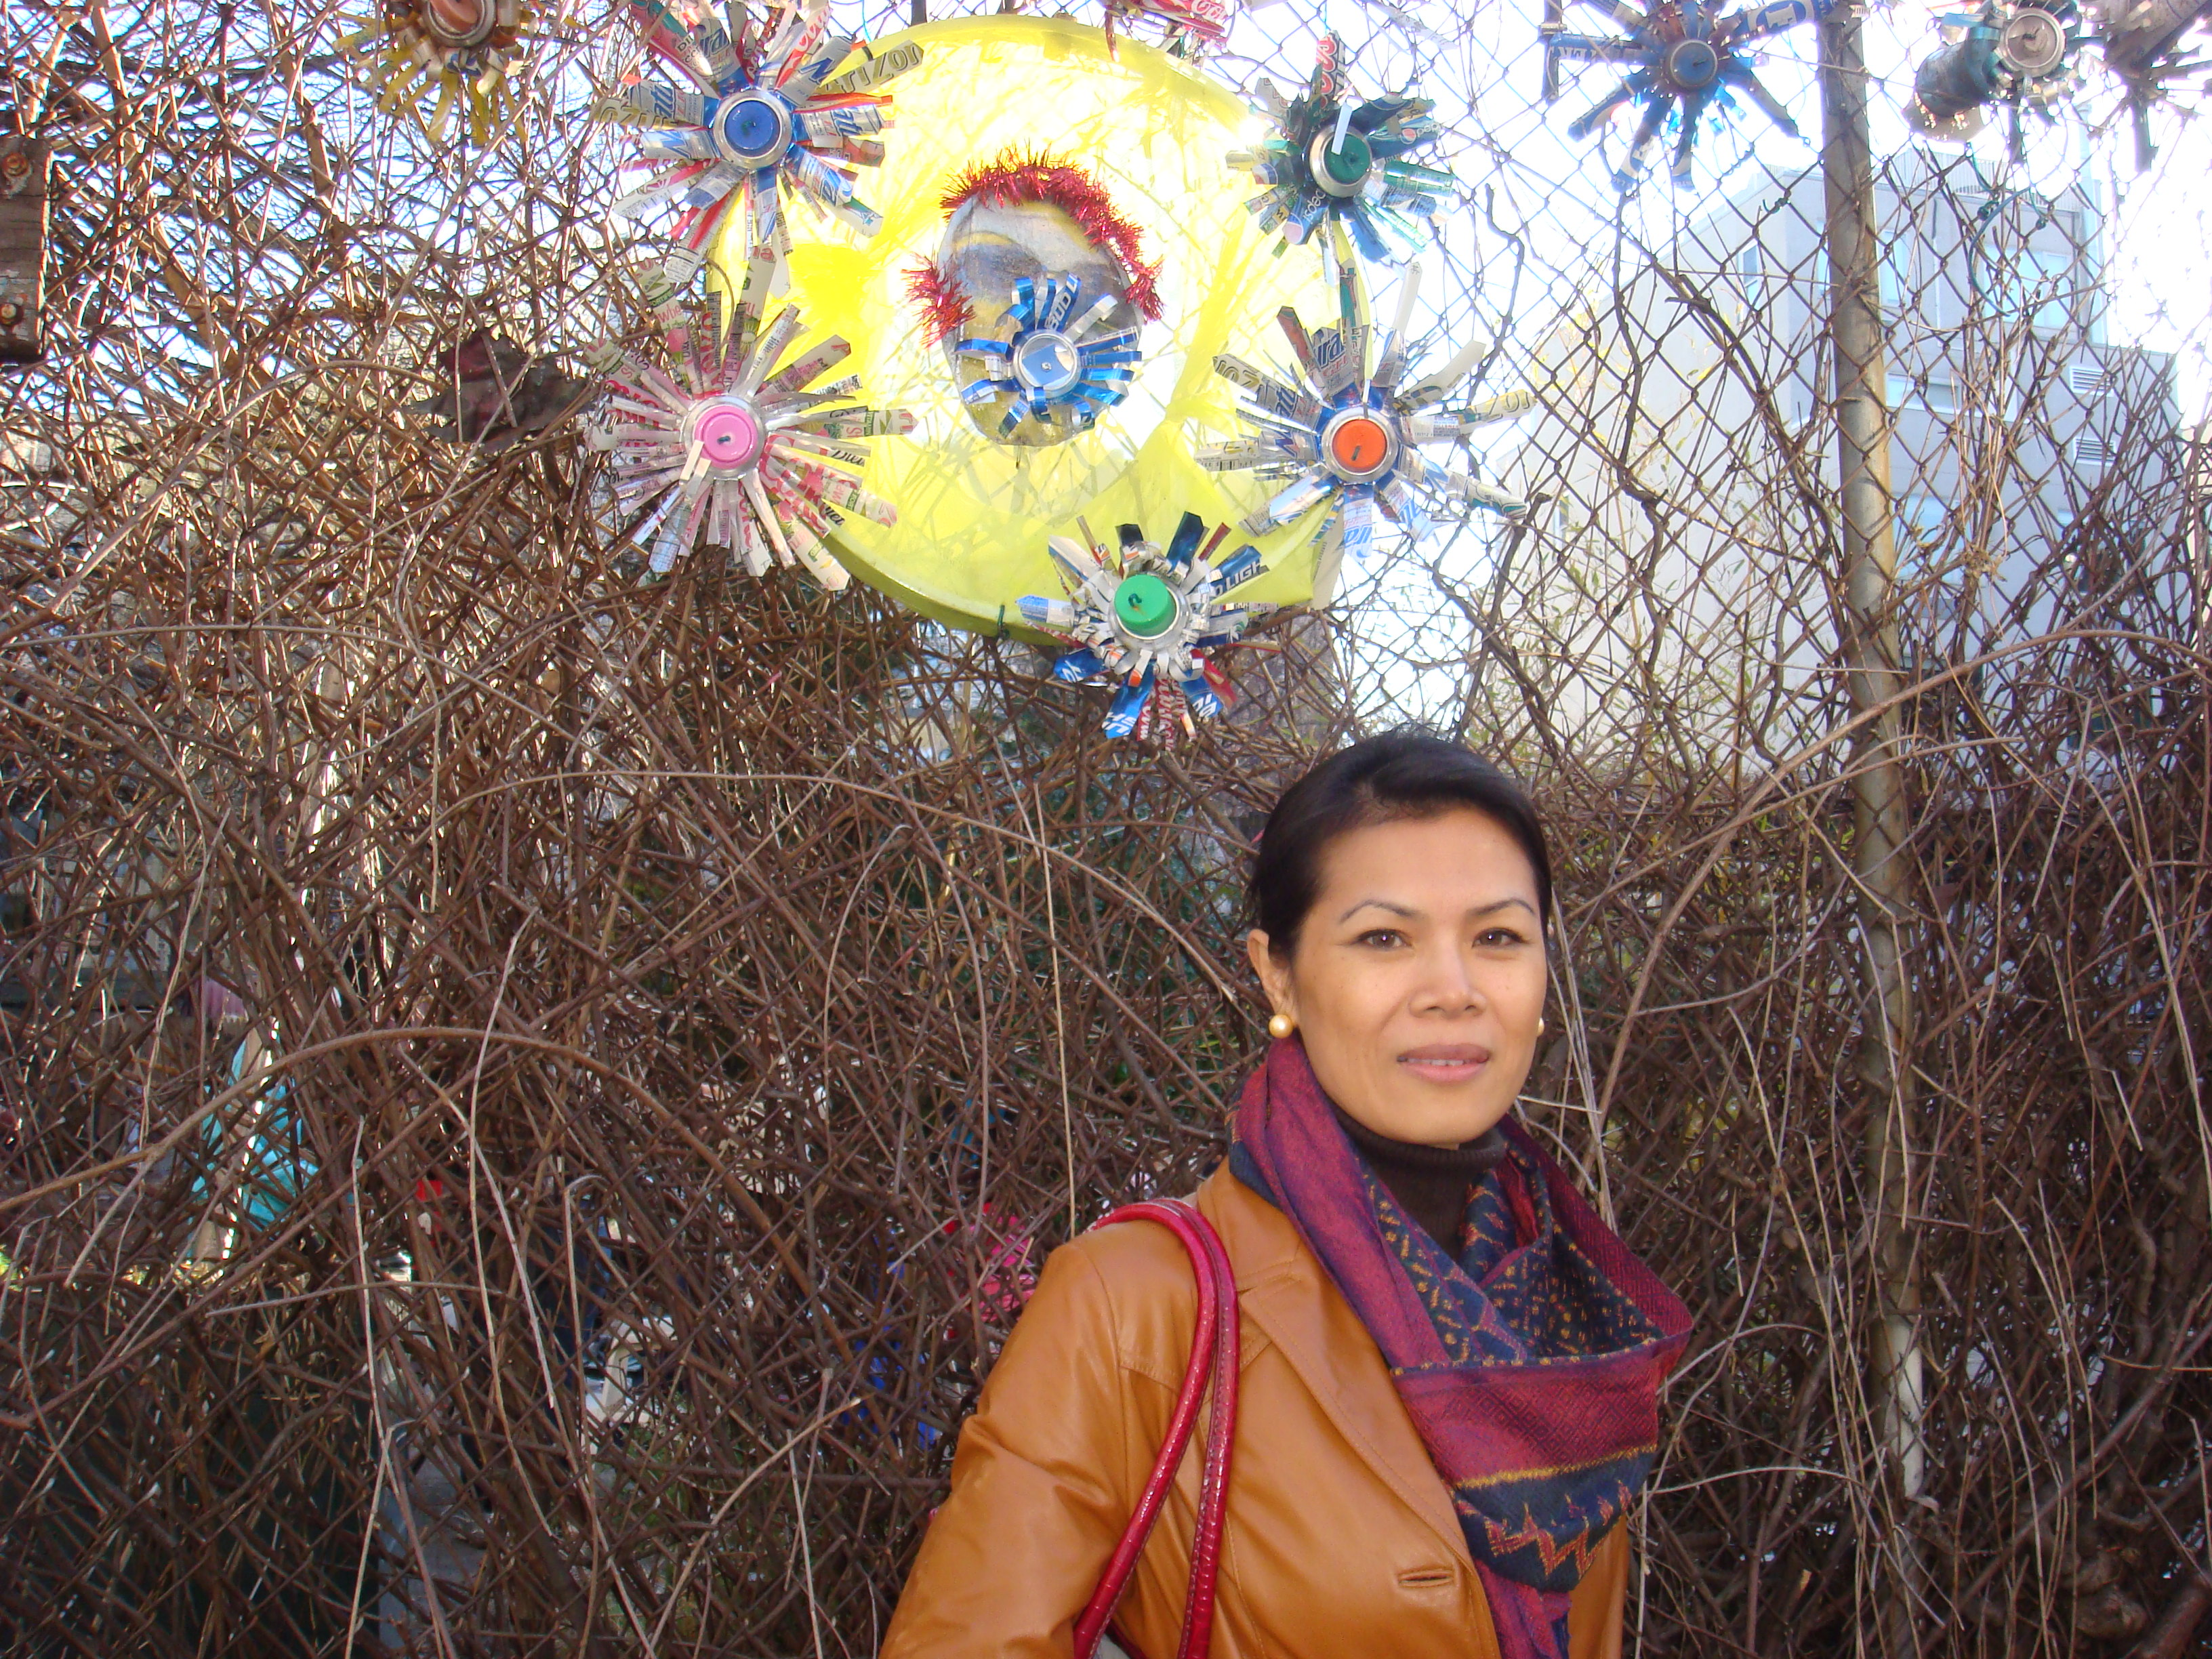 Theary Seng in NYC, photo by Matt Dillon, 16 March 2010